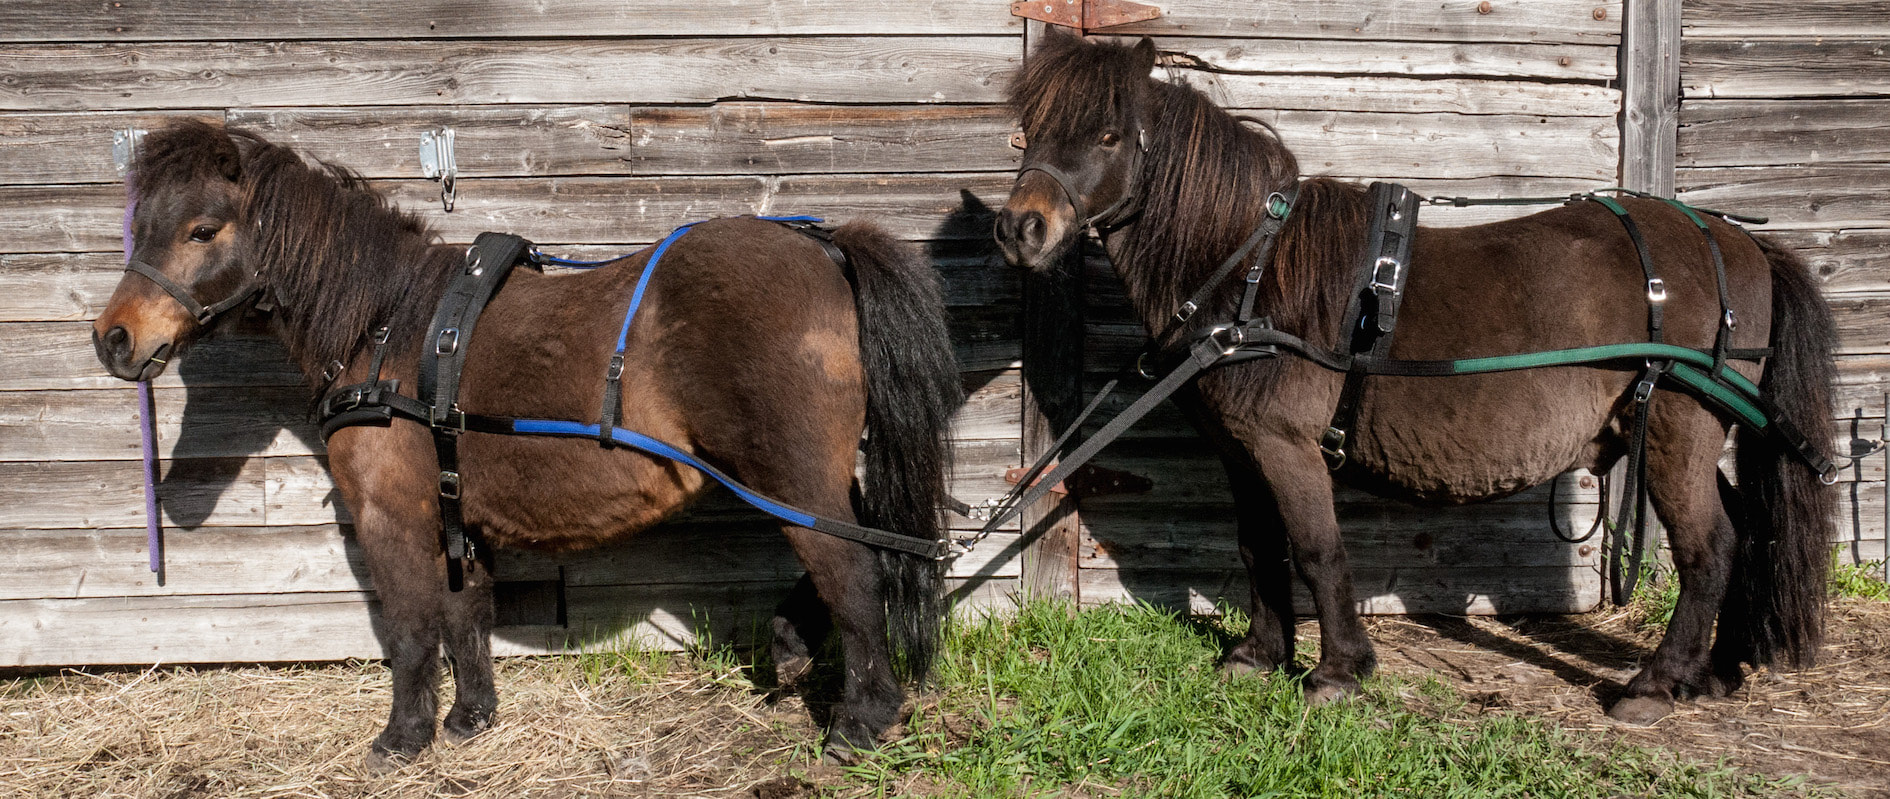 hight resolution of breast collar harness patty s pony place team horse harness parts pony team harness